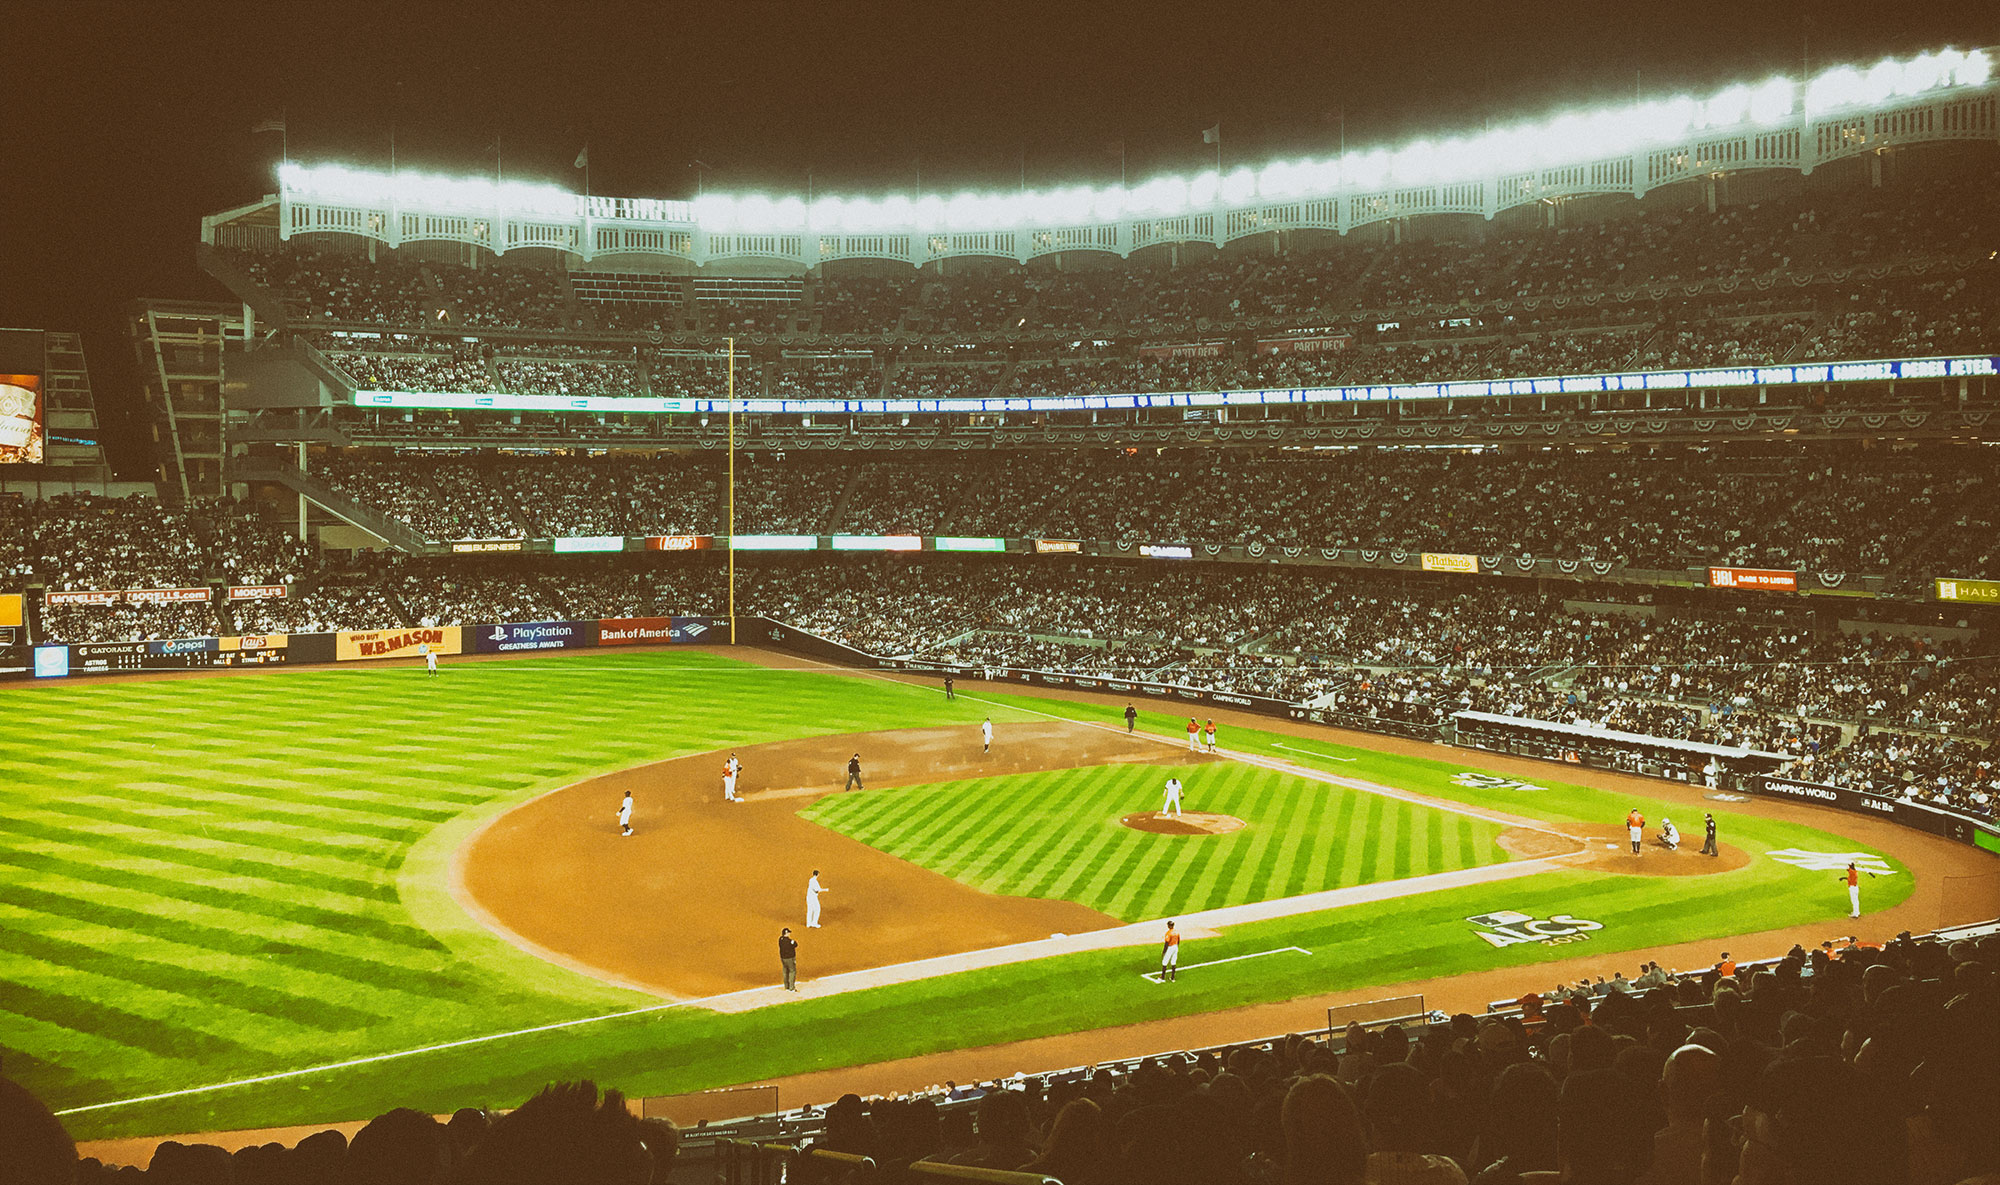 ALCS 2015, Game Five: Yankee Stadium, NY